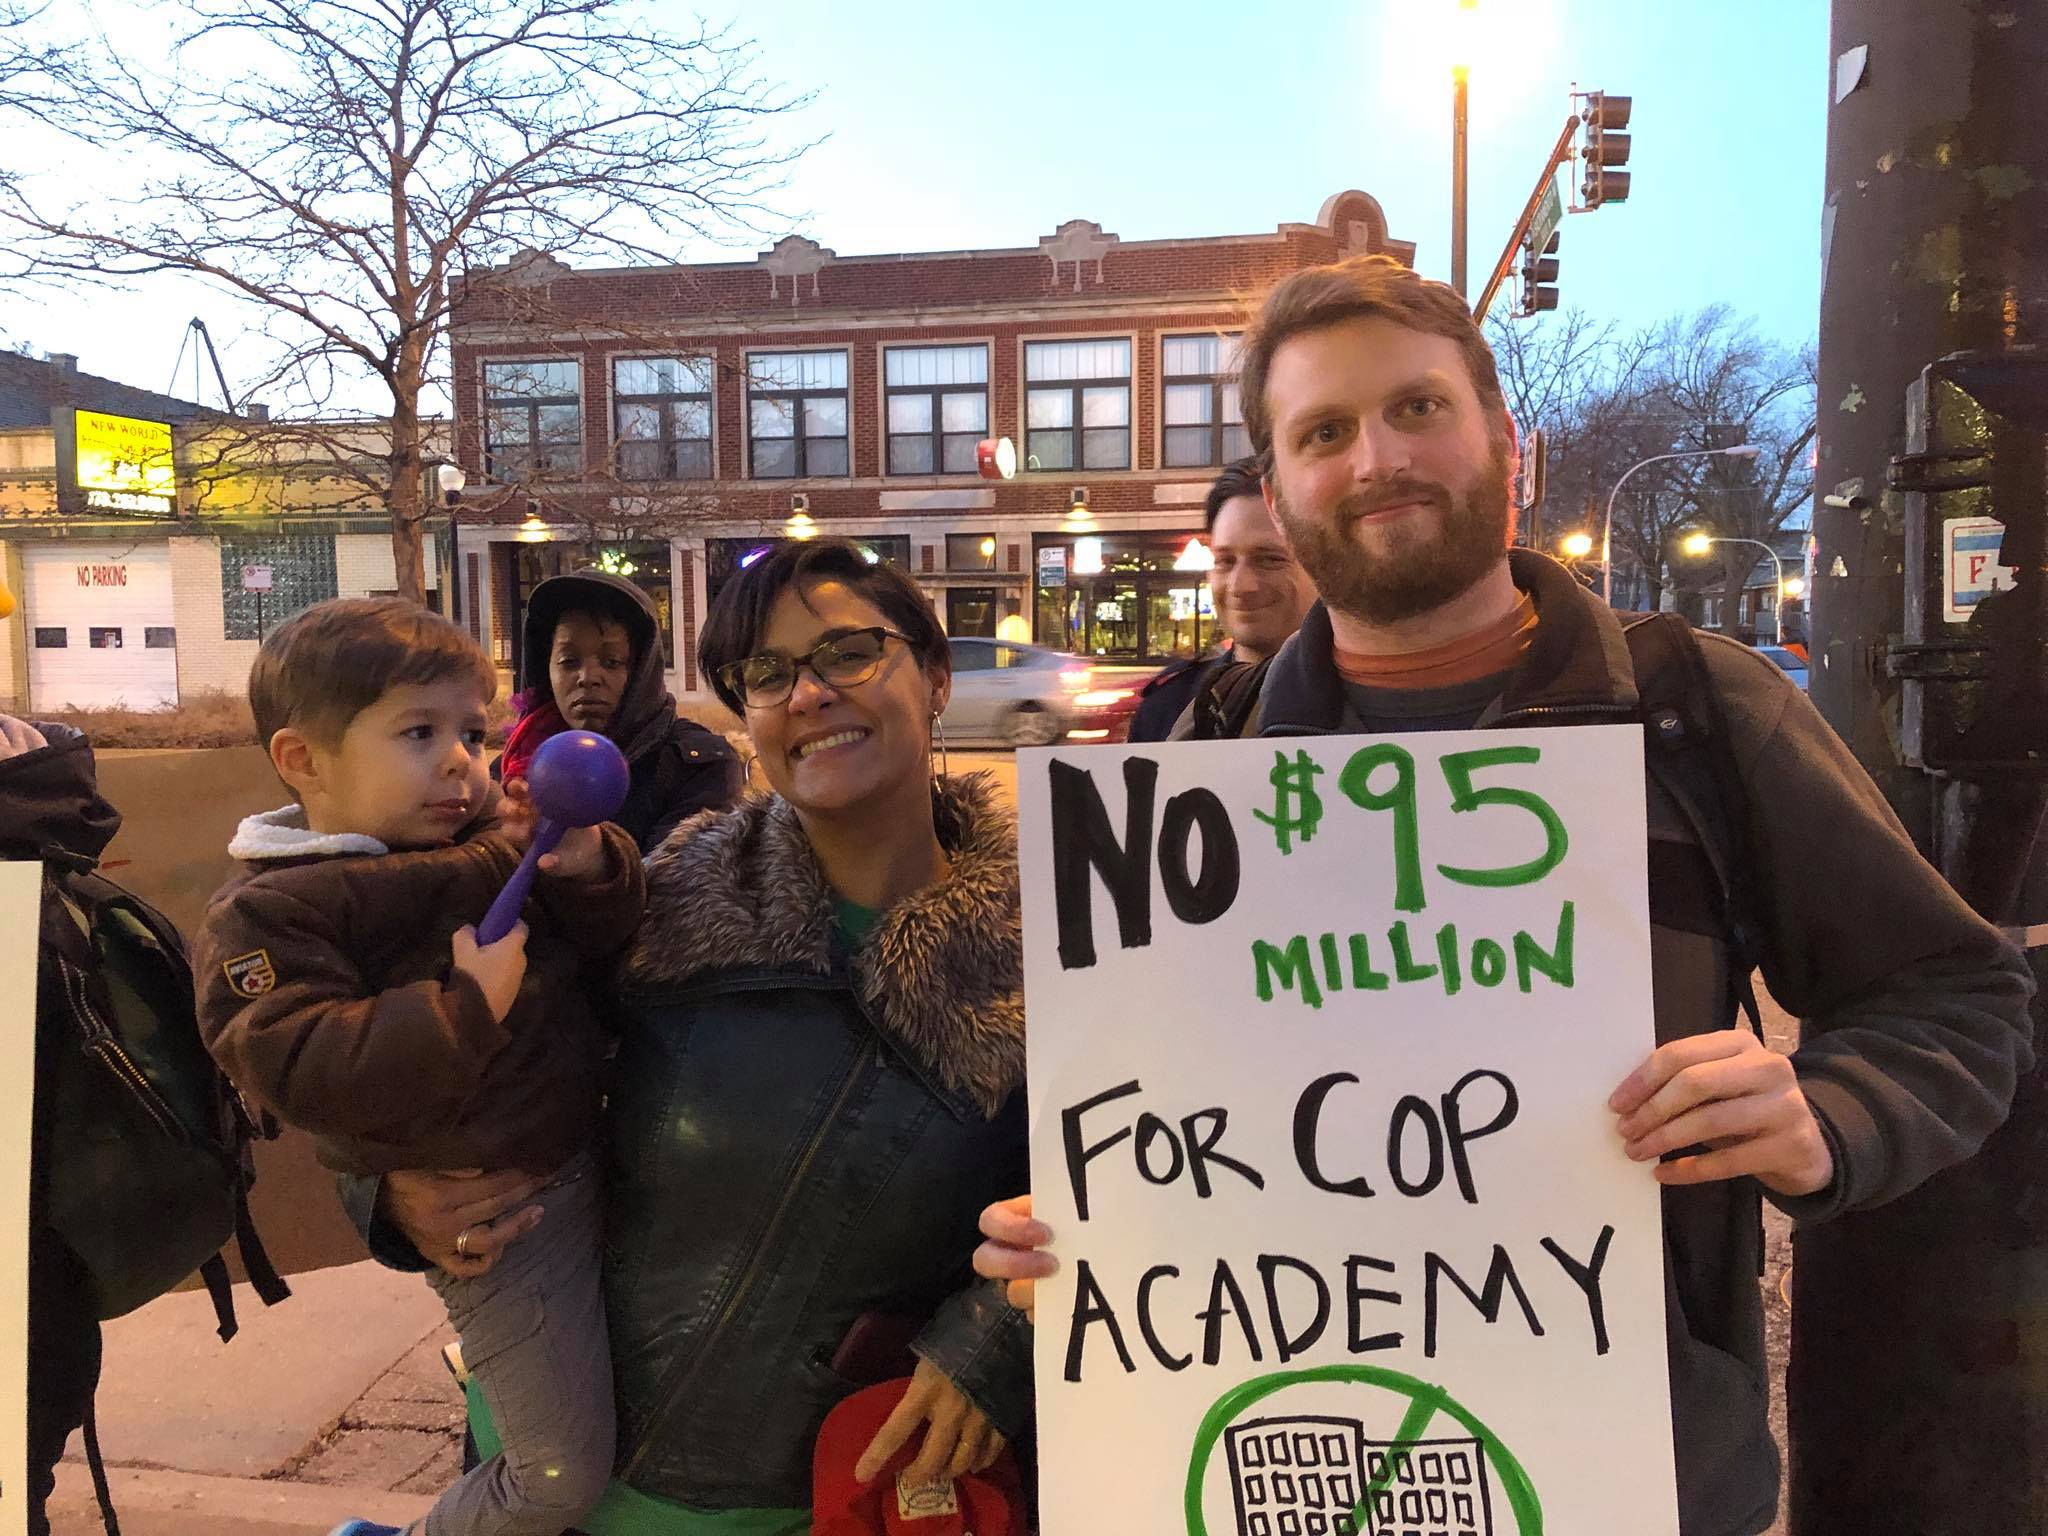 Rossana Rodriguez outside 33rd Ward Alderman Deb Mell's office protesting against the $95 million Cop Academy.